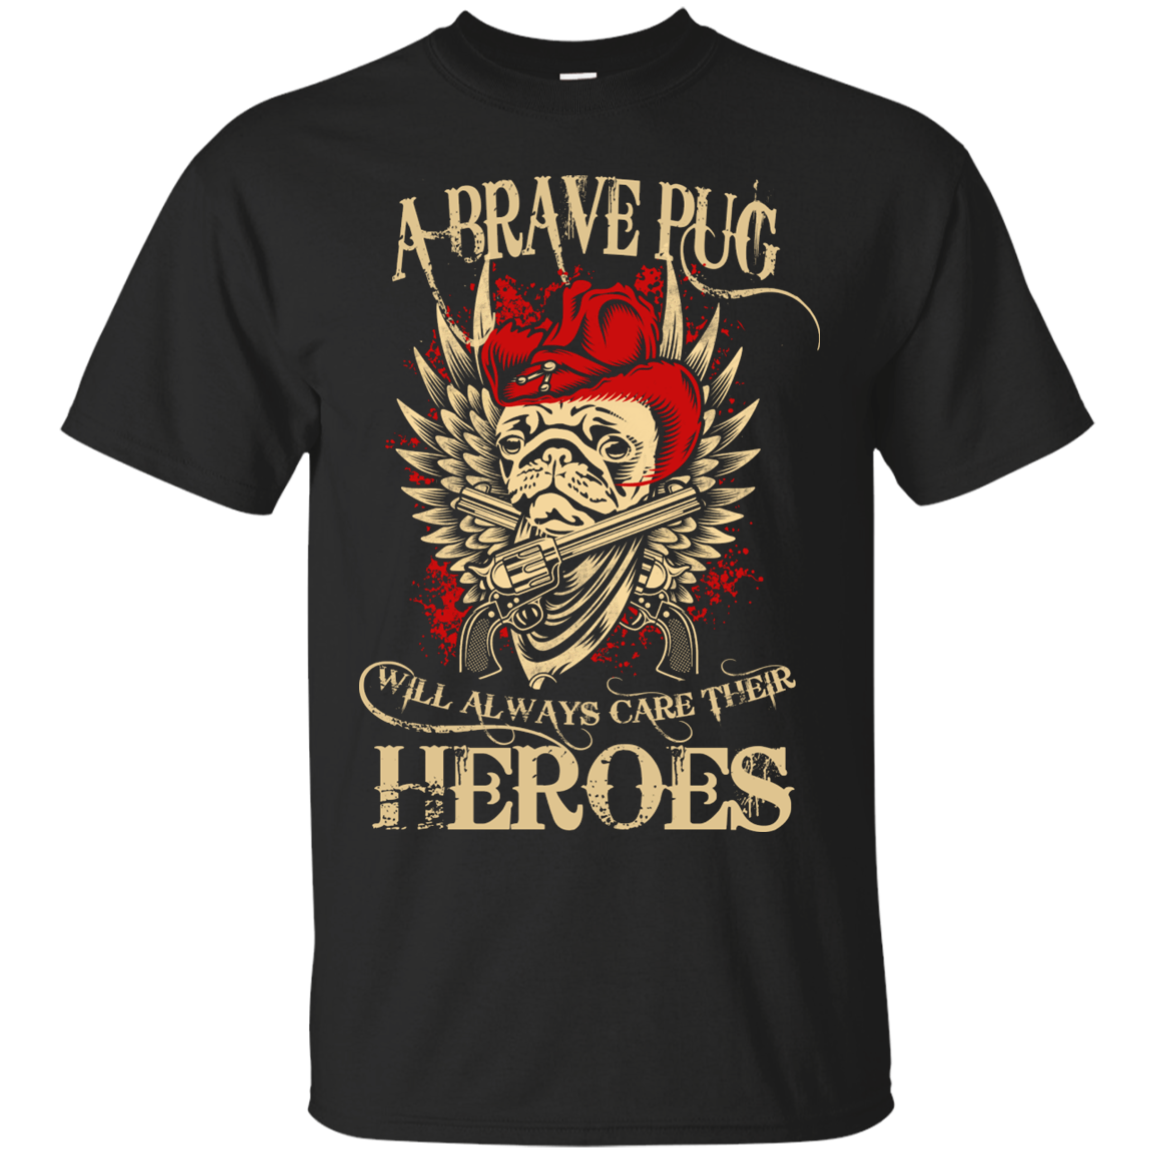 A BRAVE PUG WILL ALWAYS CARE THEIR HEROES T-Shirt & Hoodie